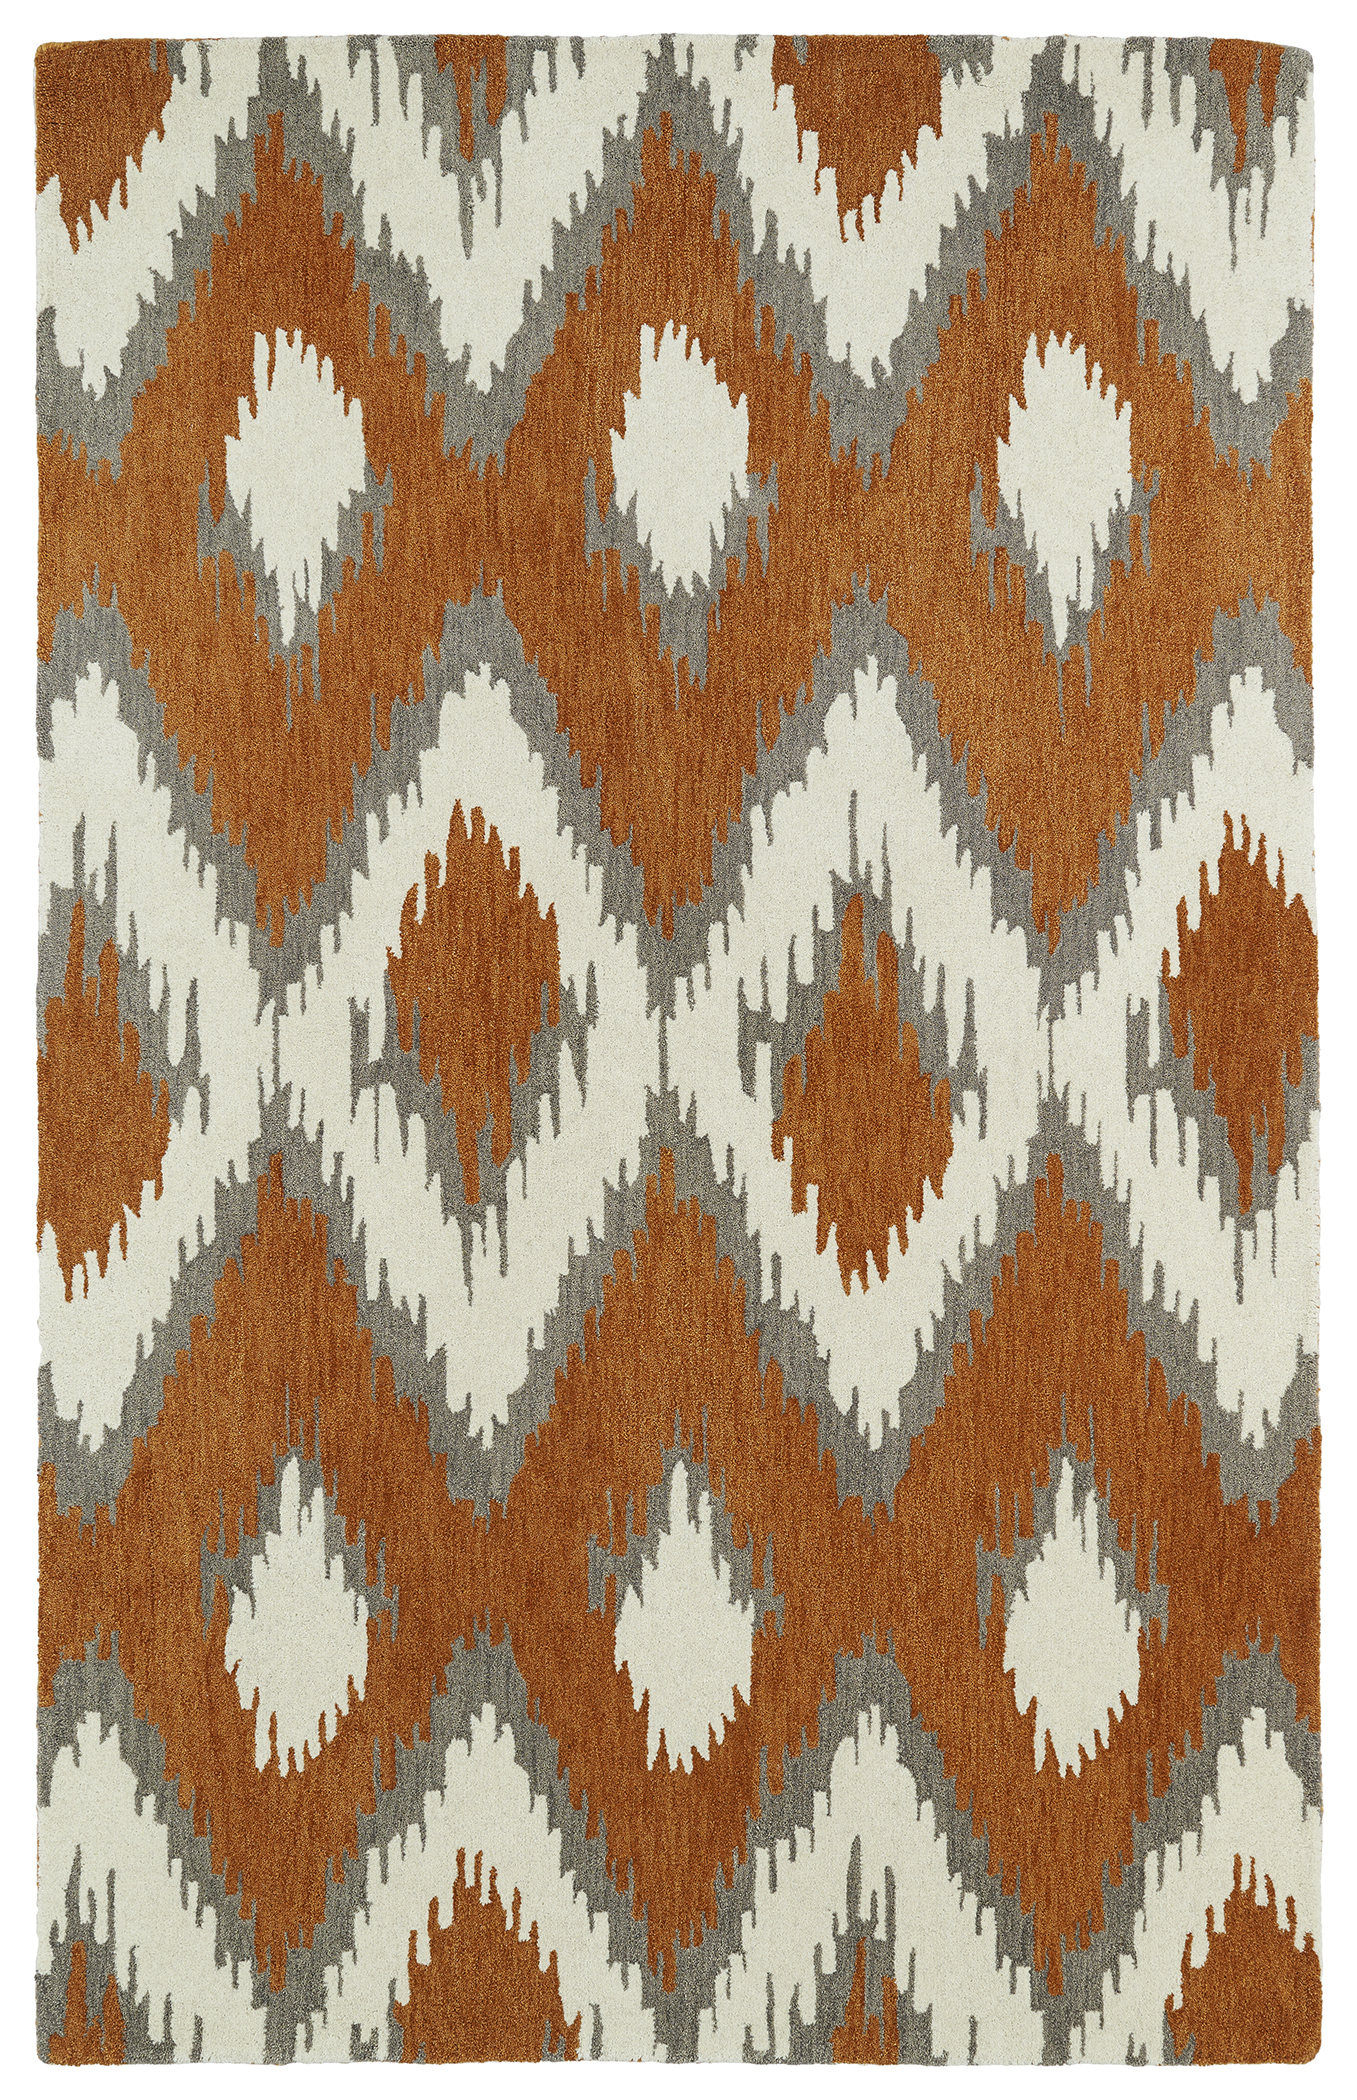 Kaleen Global Inspirations GLB10 53 Paprika Area Rug